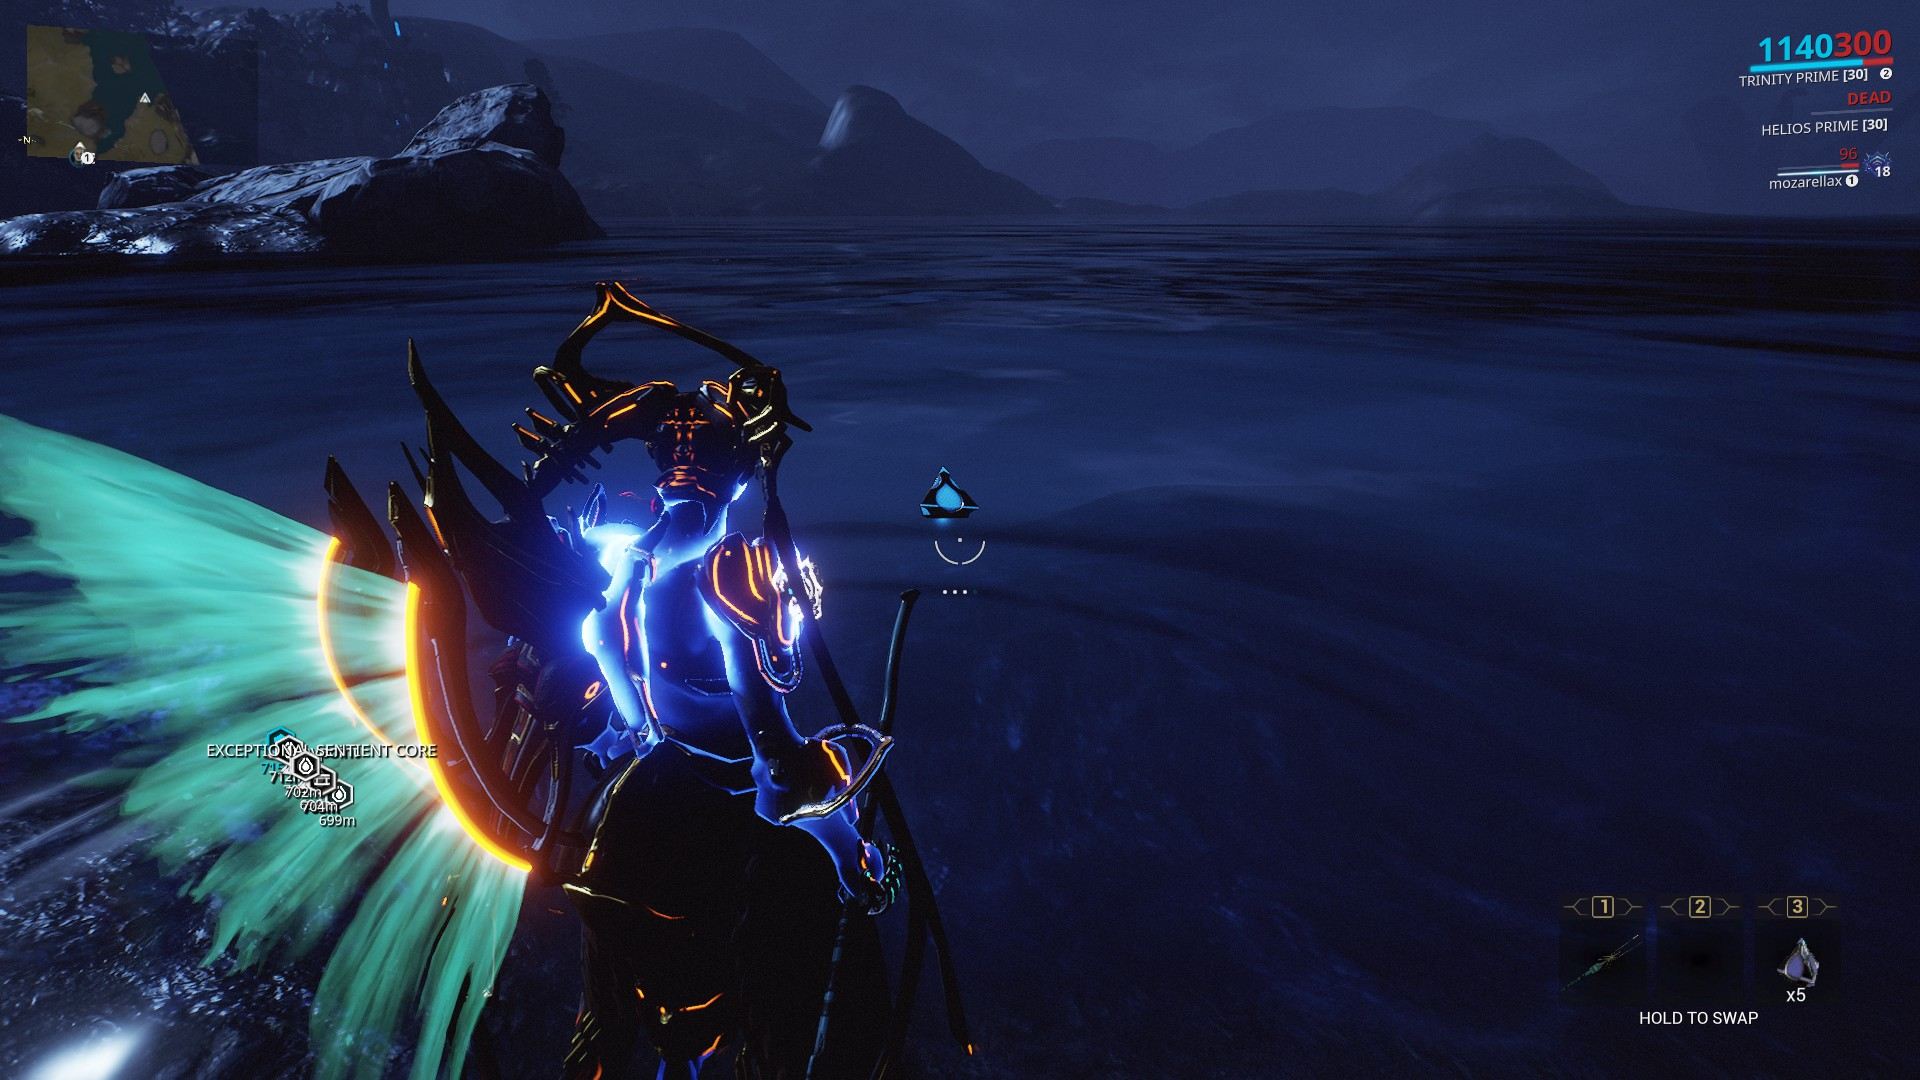 Steam Community :: Guide :: Ultimate fishing guide